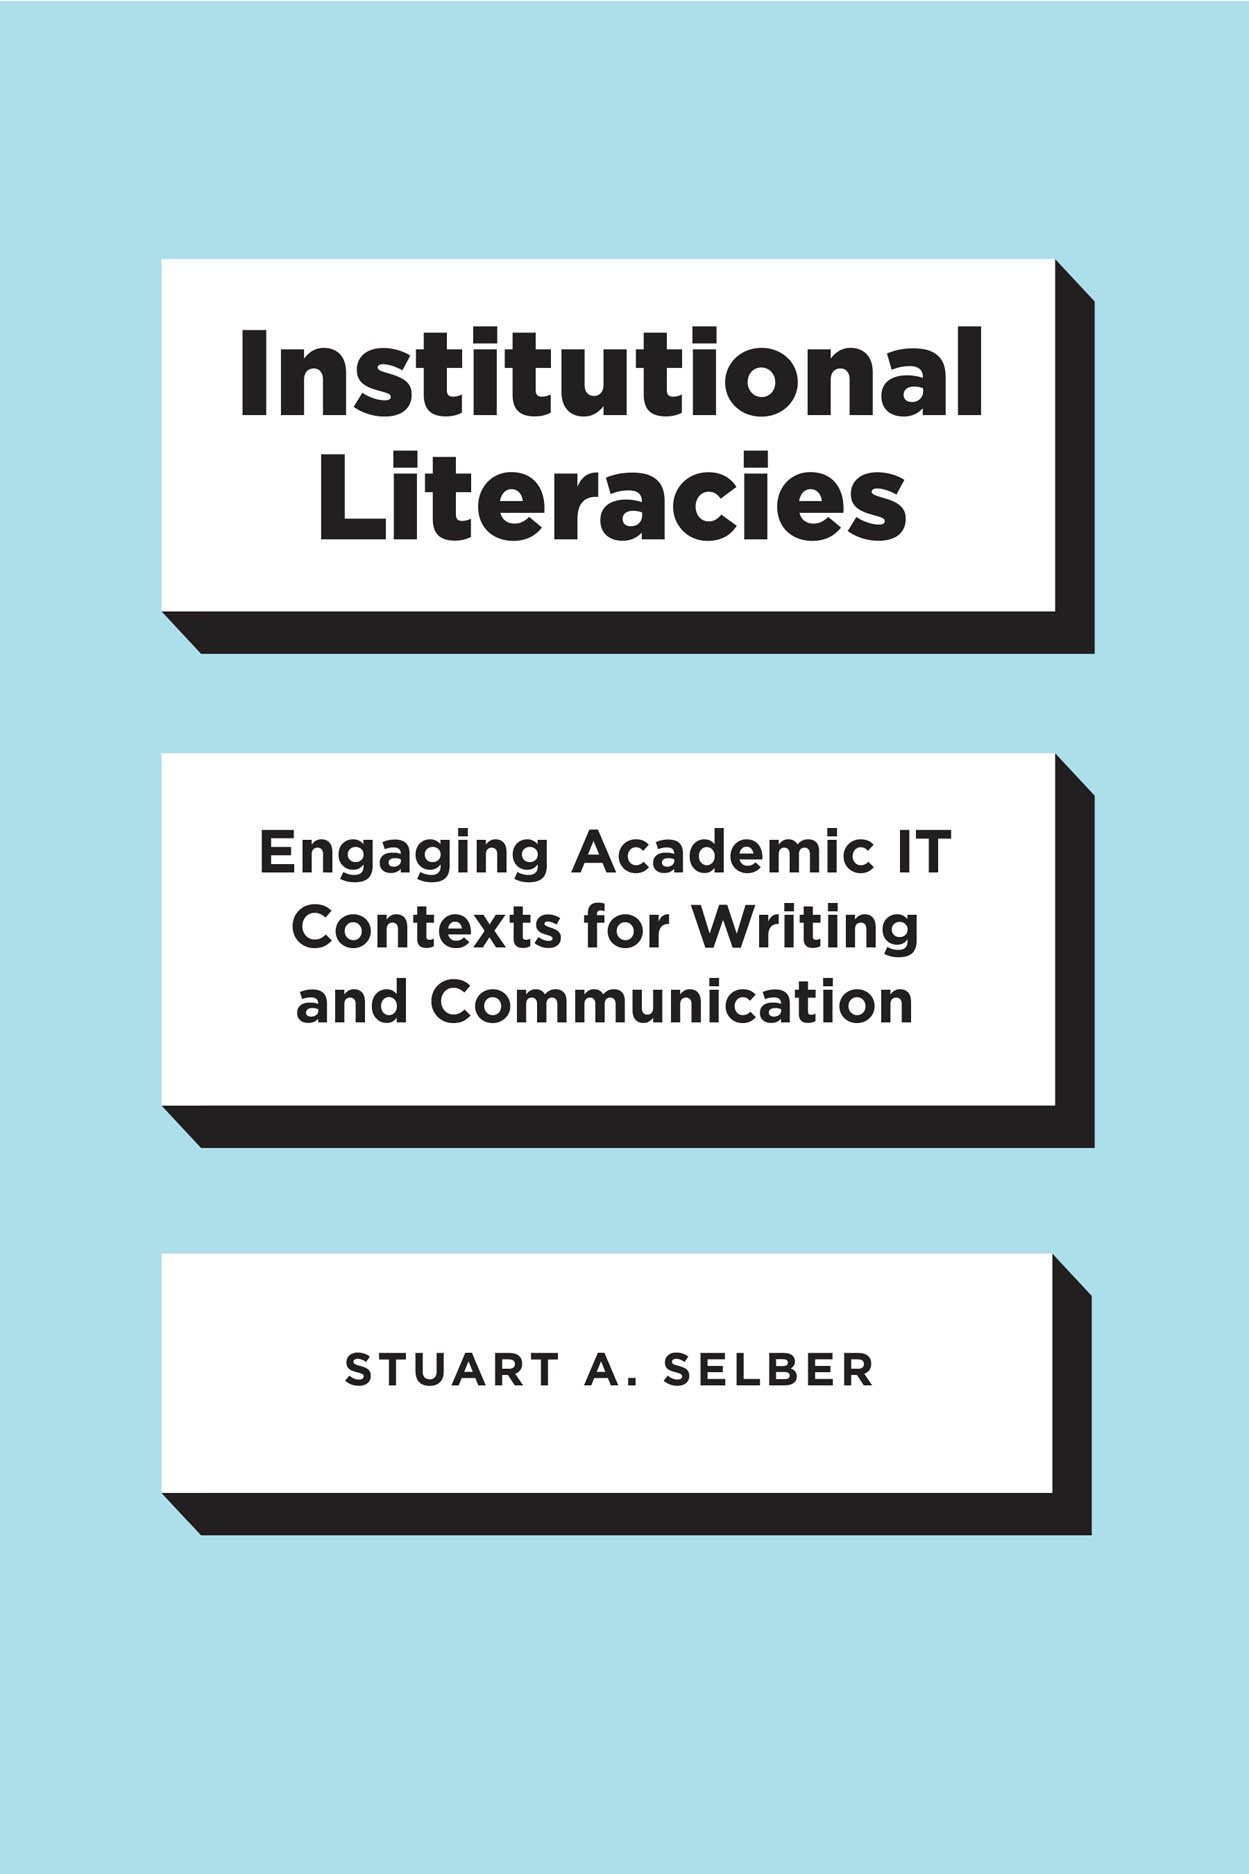 Institutional Literacies